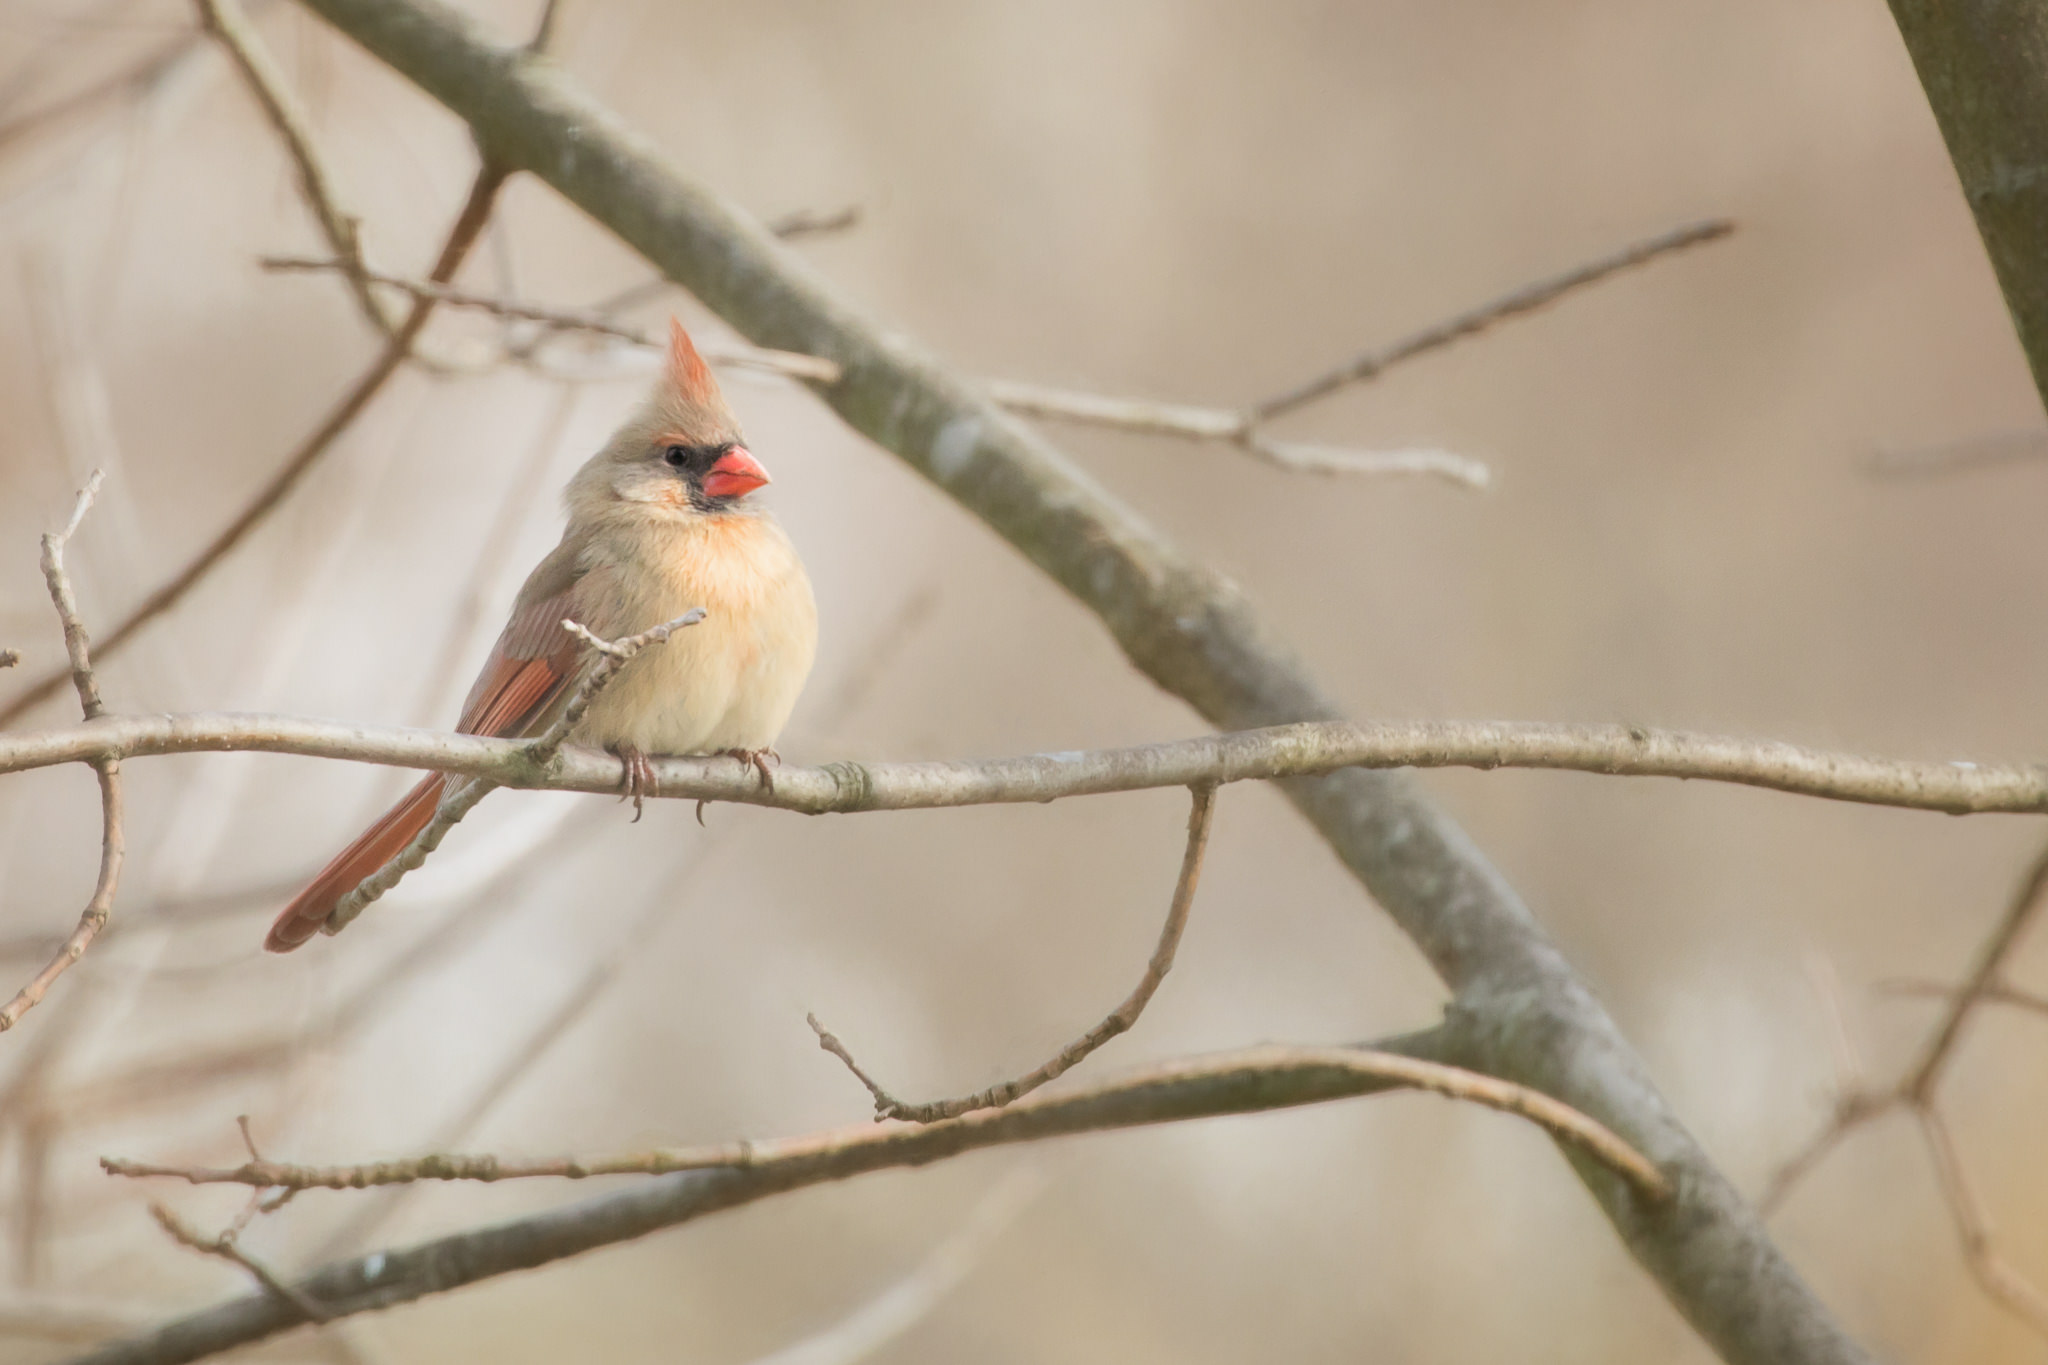 Famale Cardinal on tree branch